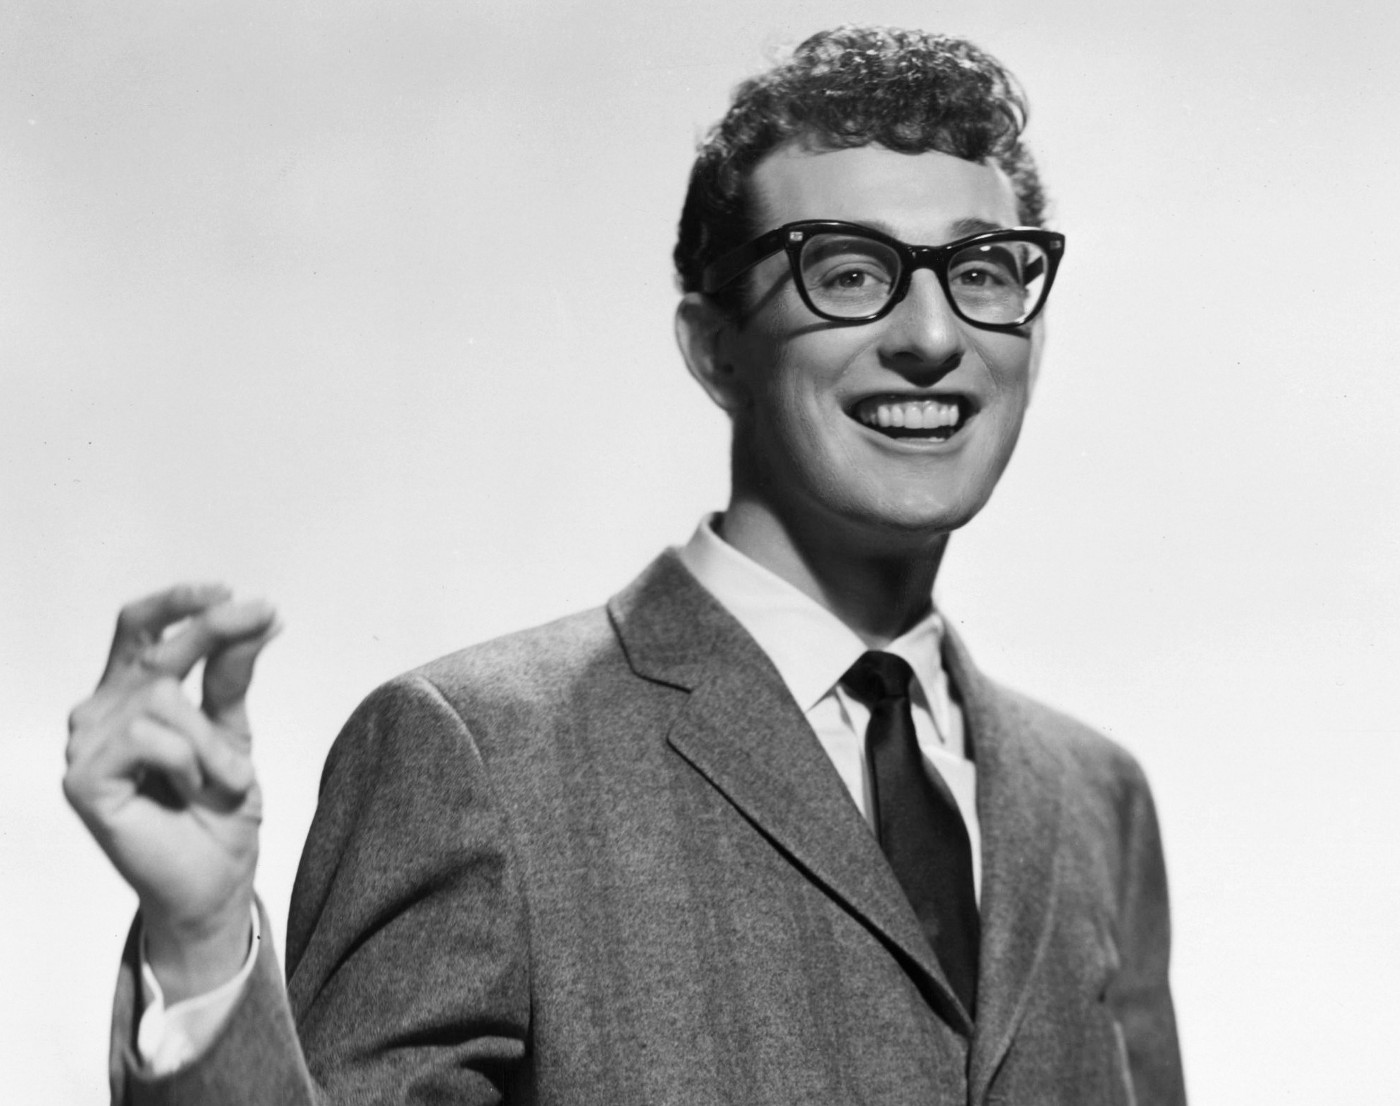 Image of black and white photograph of rock singer Buddy Holly